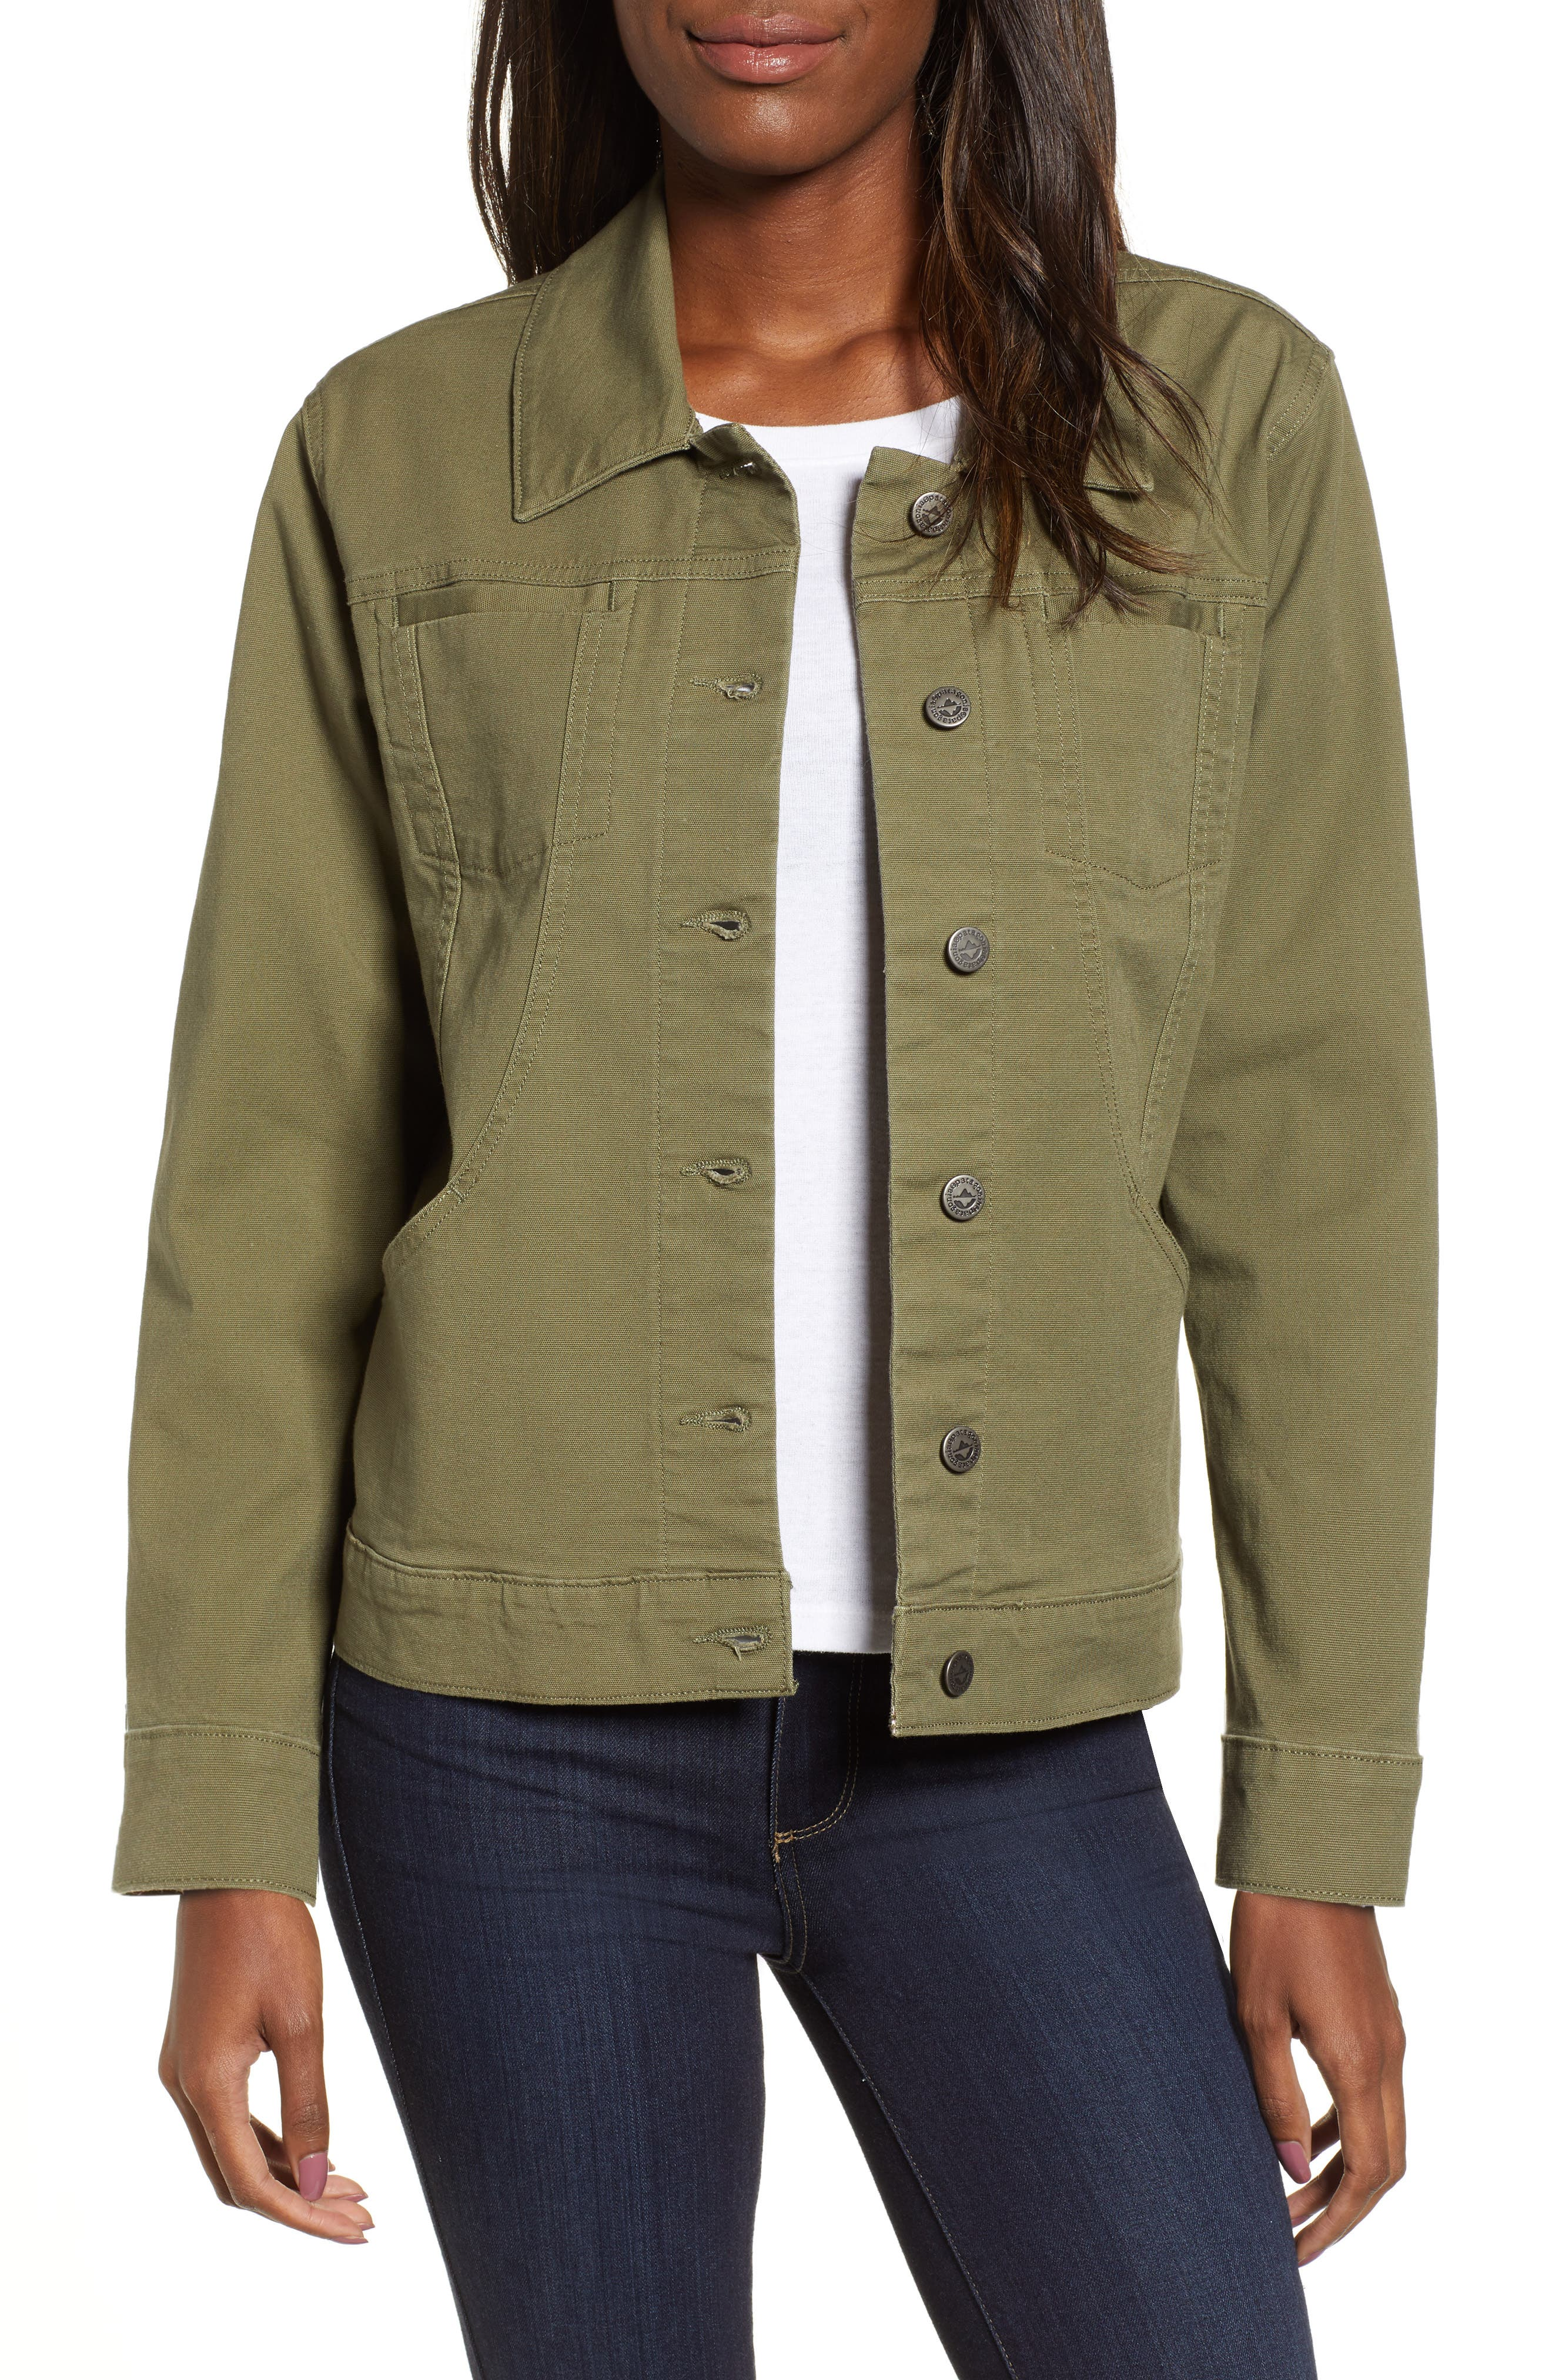 Patagonia Stand Up Shirt Jacket, Green